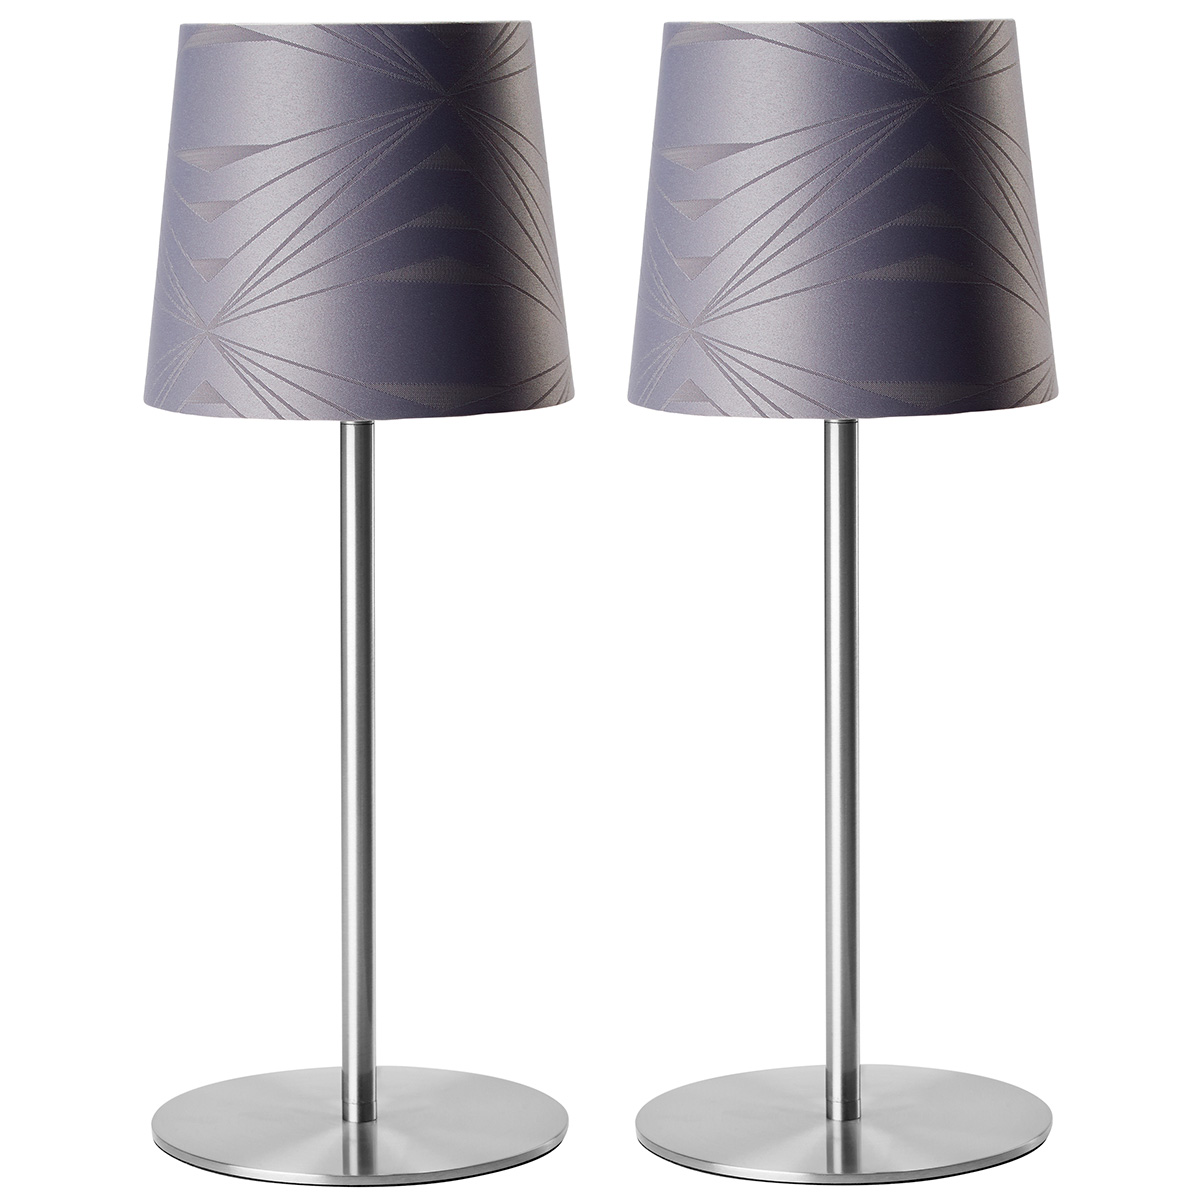 Image of   Georg Jensen Damask bordlamper - Krystal - Grå